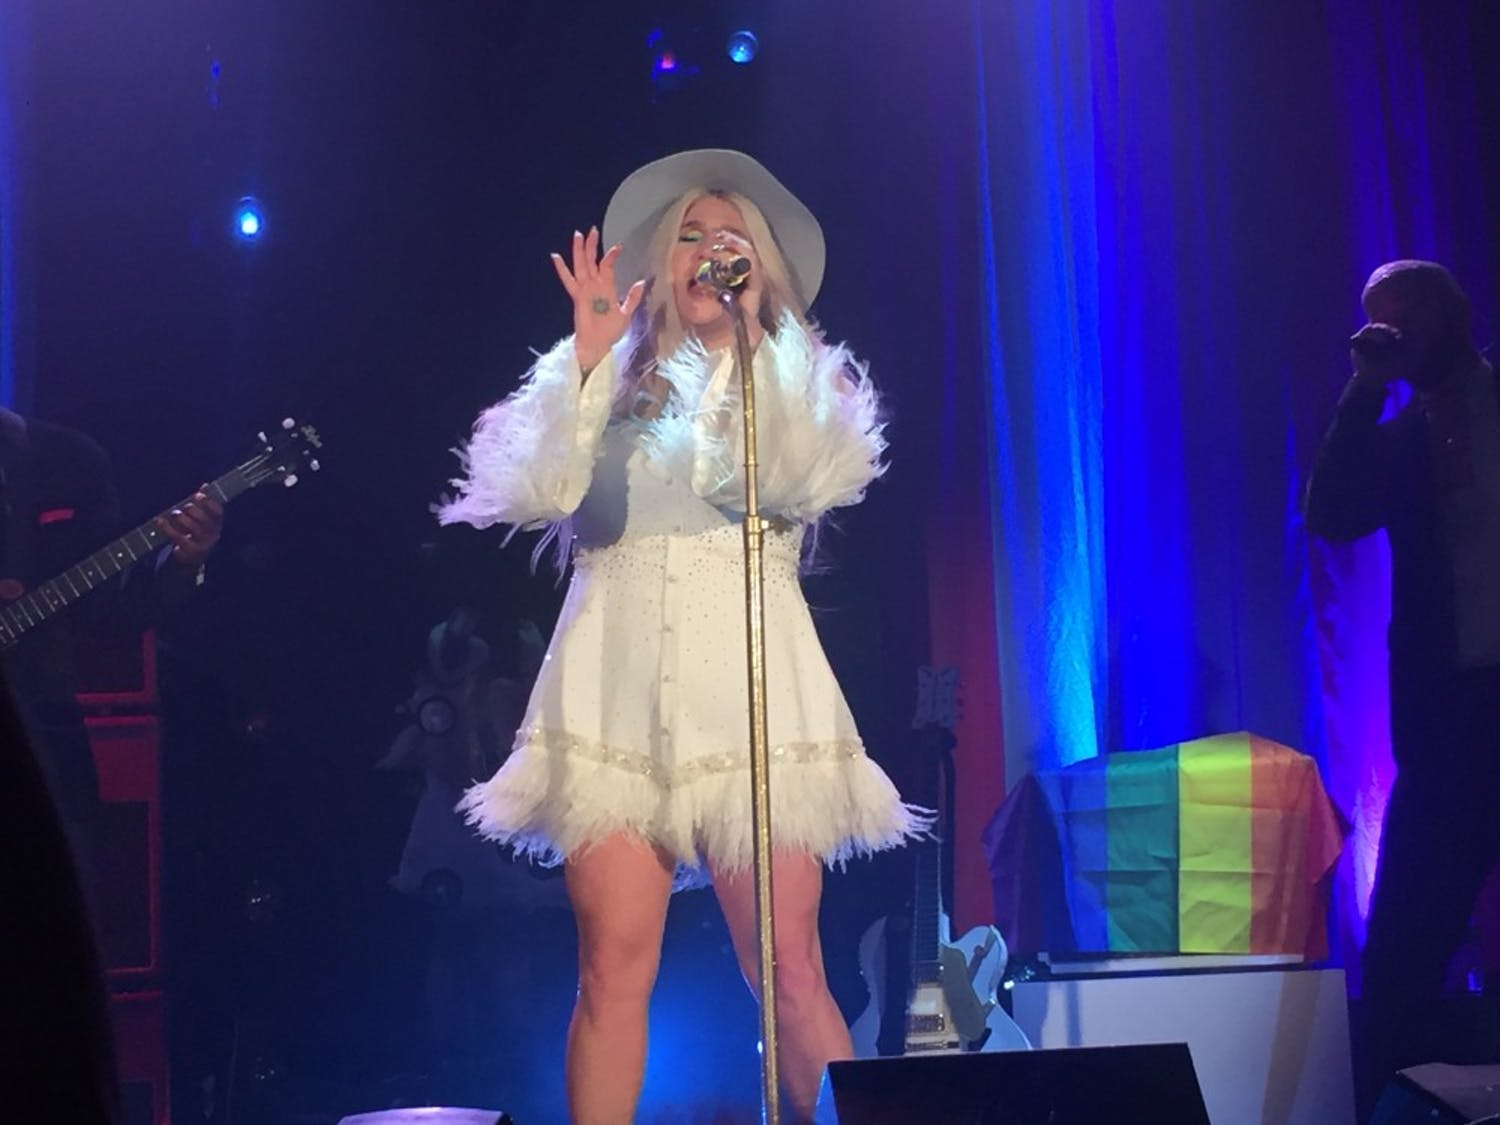 Kesha performed at the Ritz Raleigh Monday night.